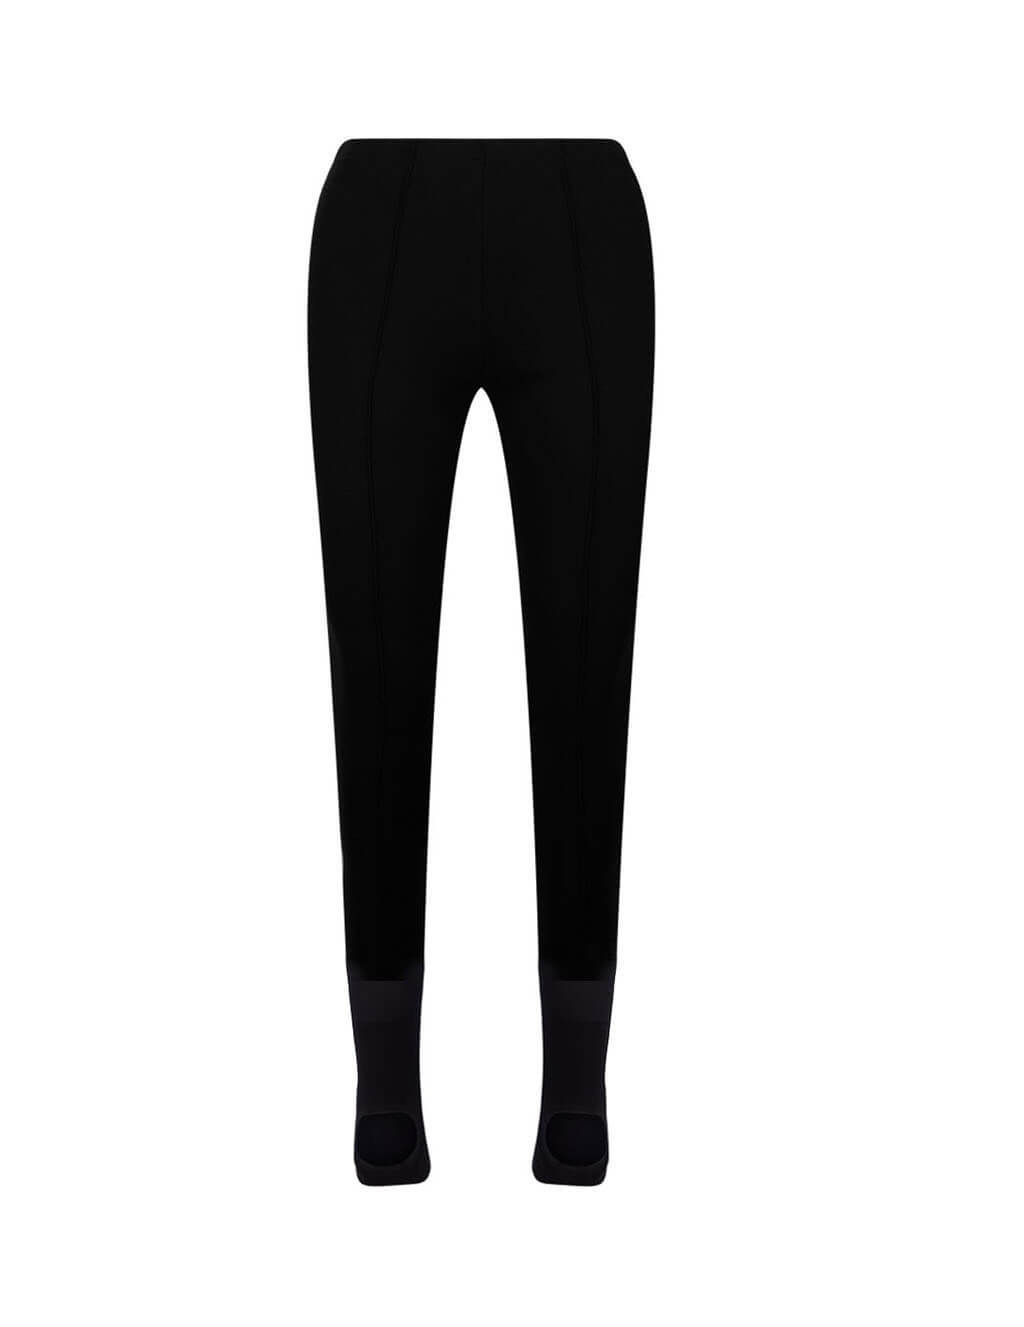 Women's Black Balenciaga Dynasty Leggings 622317TTK211000